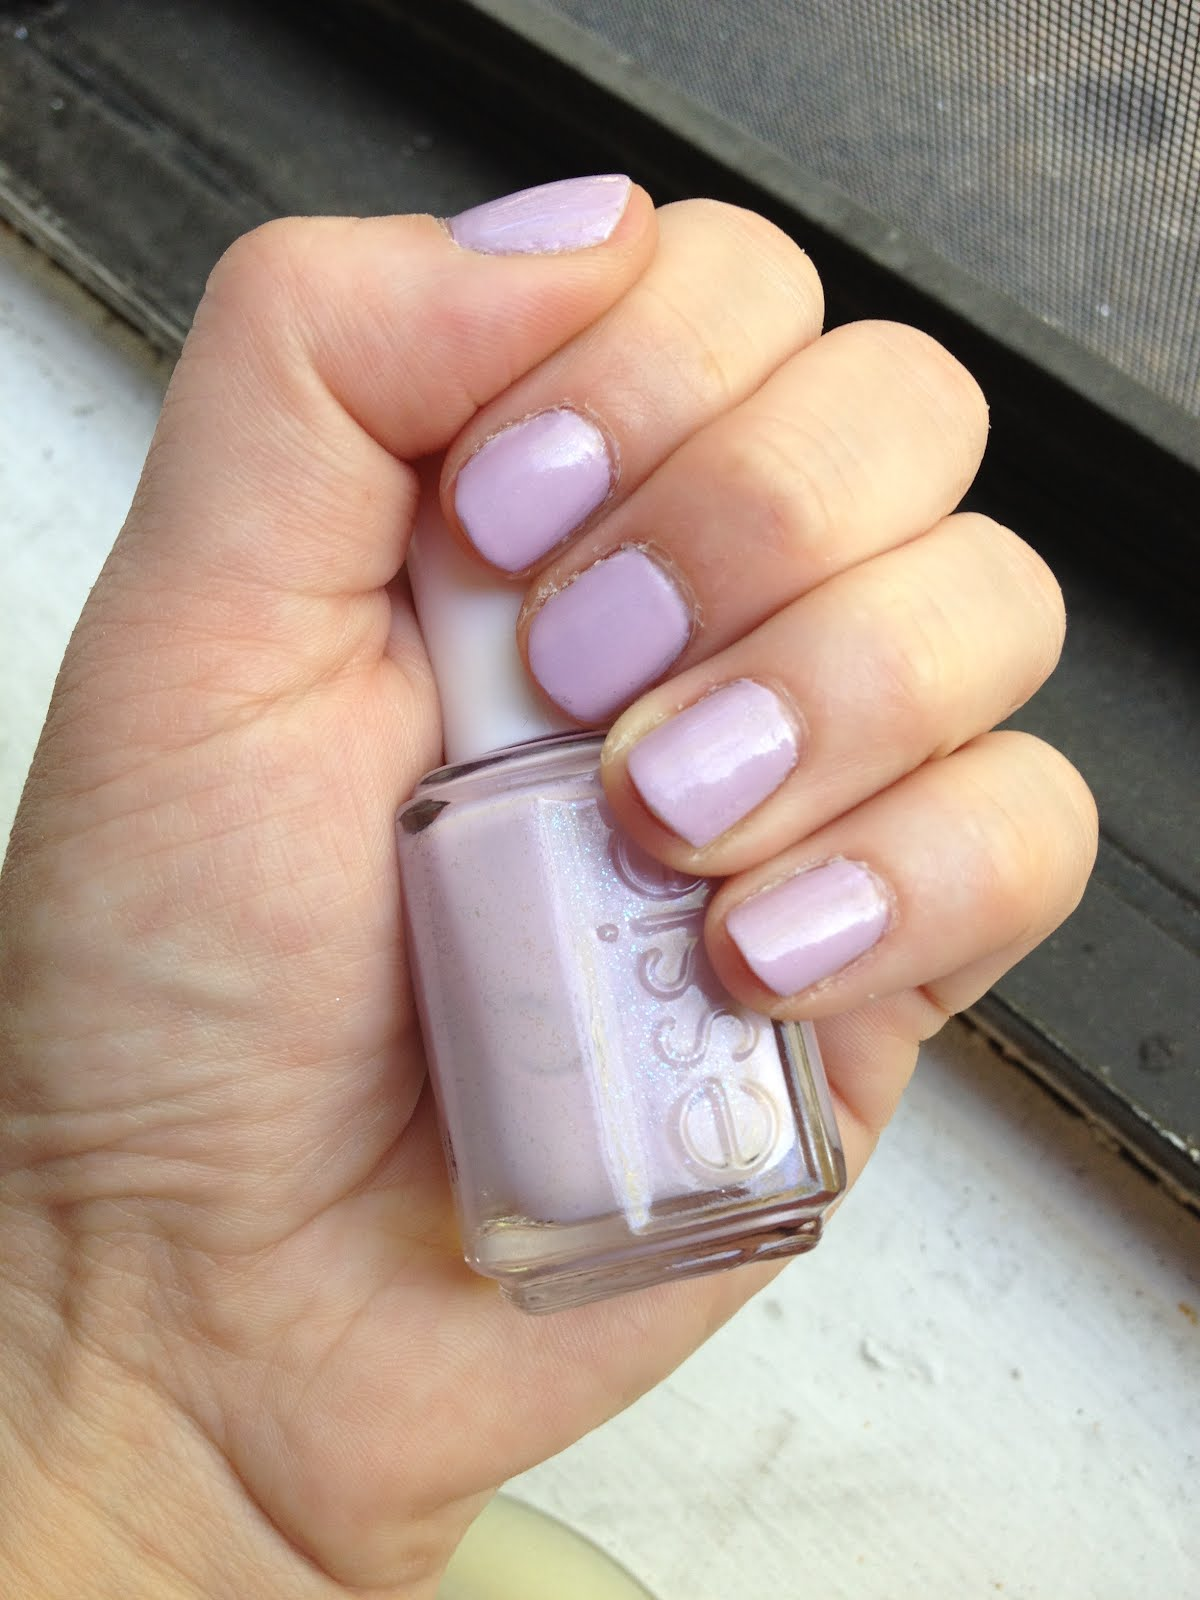 The Beauty of Life: Mani of the Week: Essie To Buy or Not to Buy